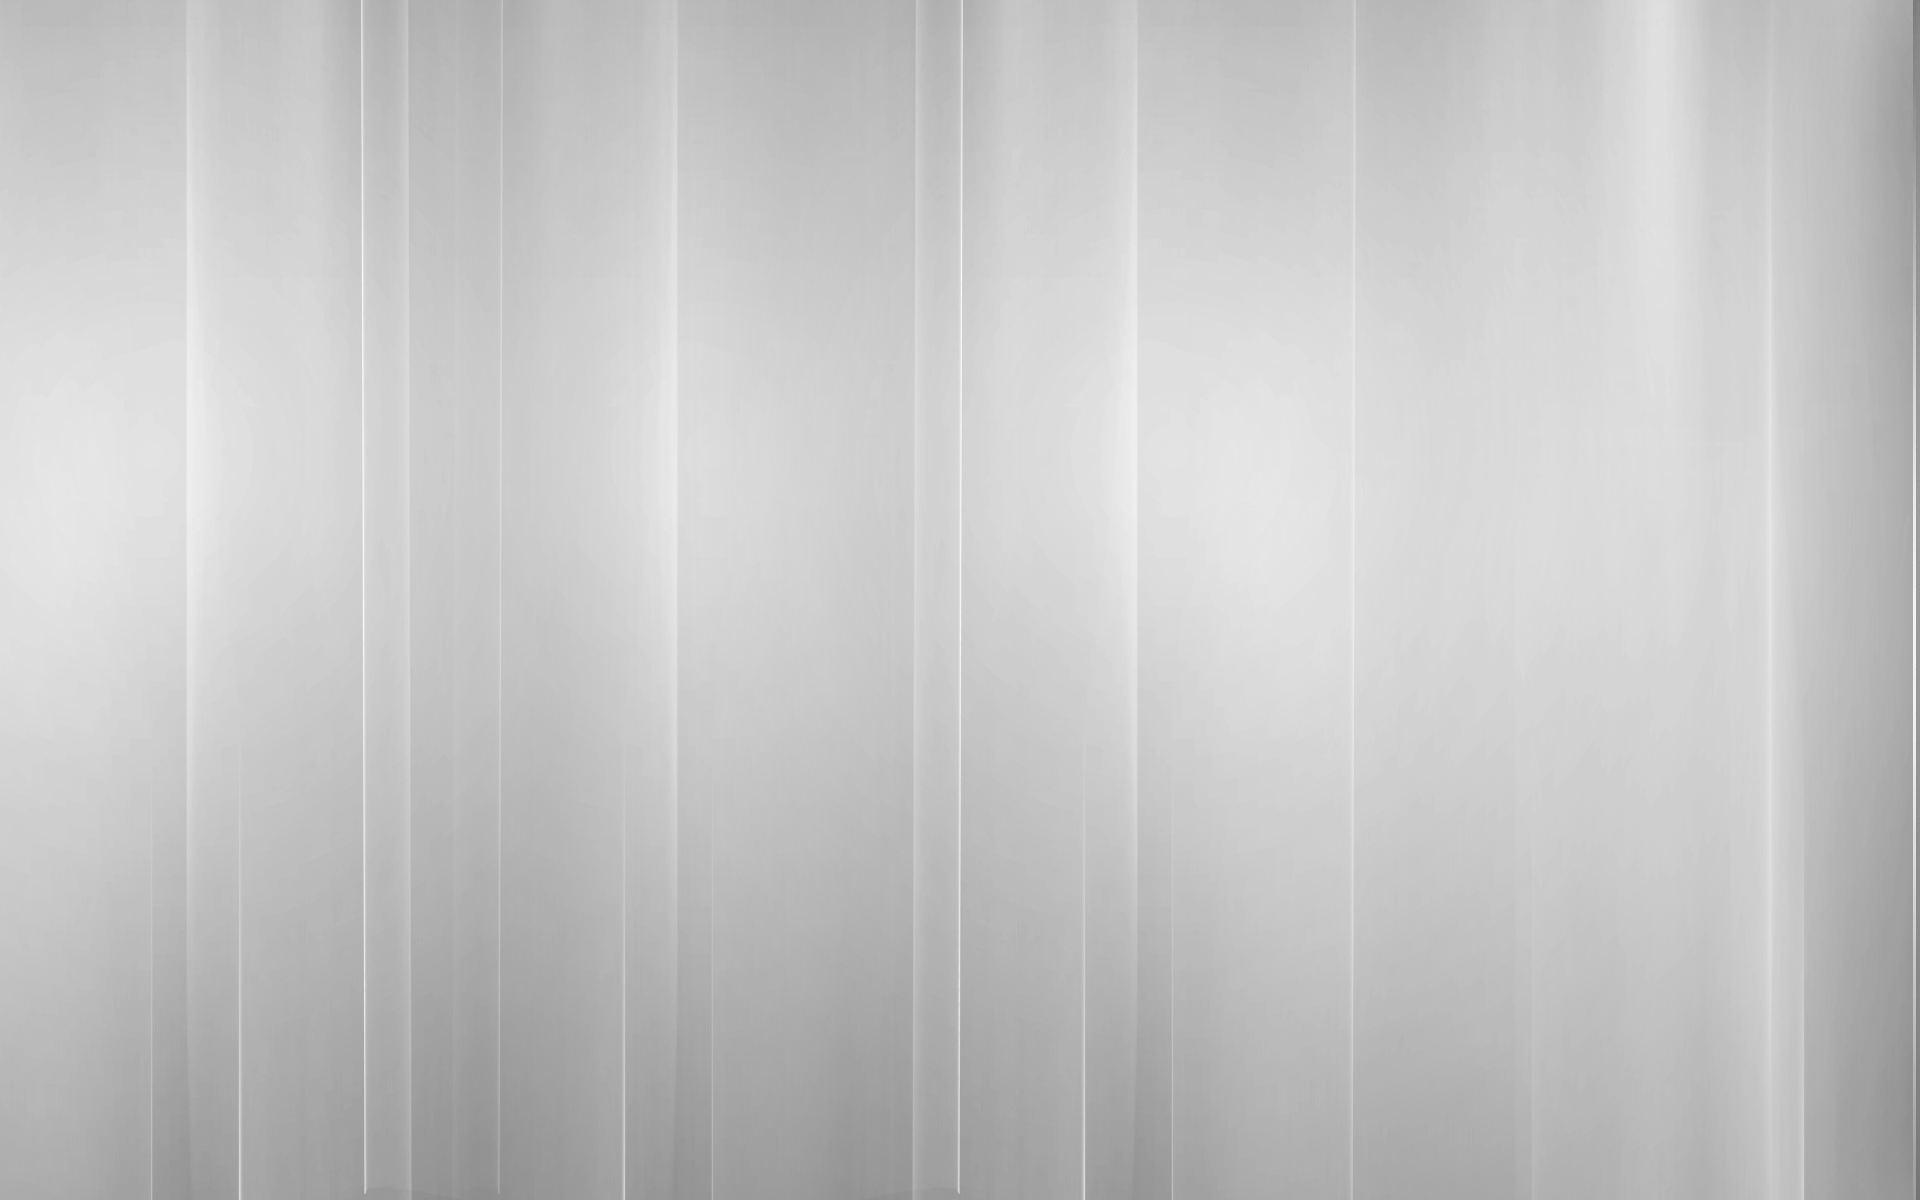 Shades of grey wallpaper - 88465